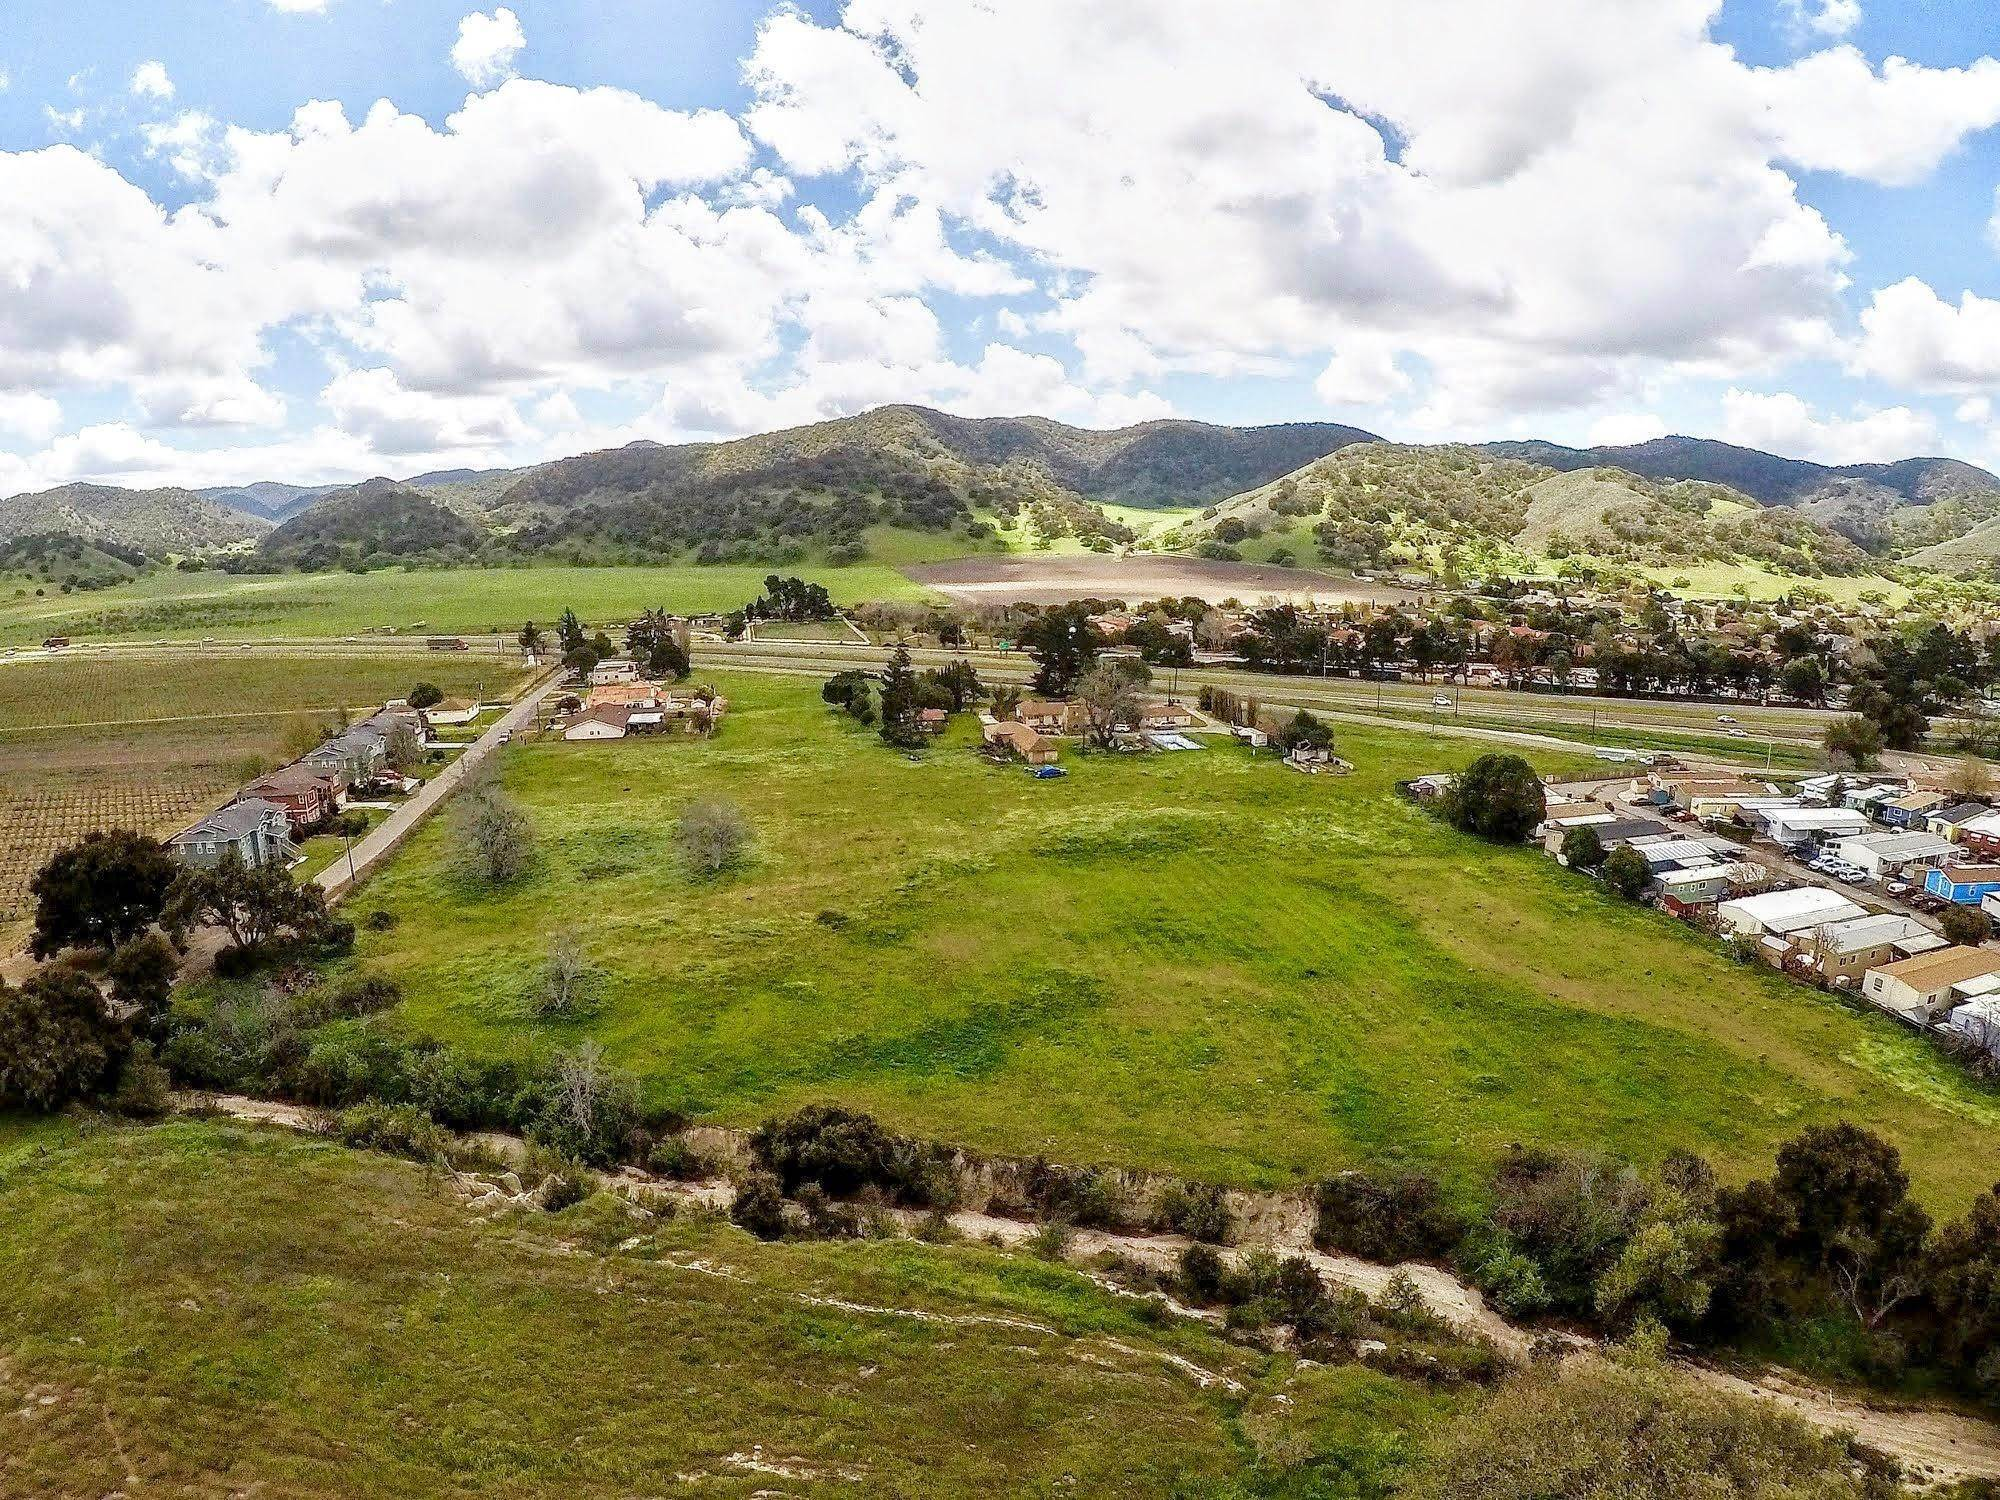 Estate for Sale at 9324 Hwy 101 Los Alamos, California 93440 United States